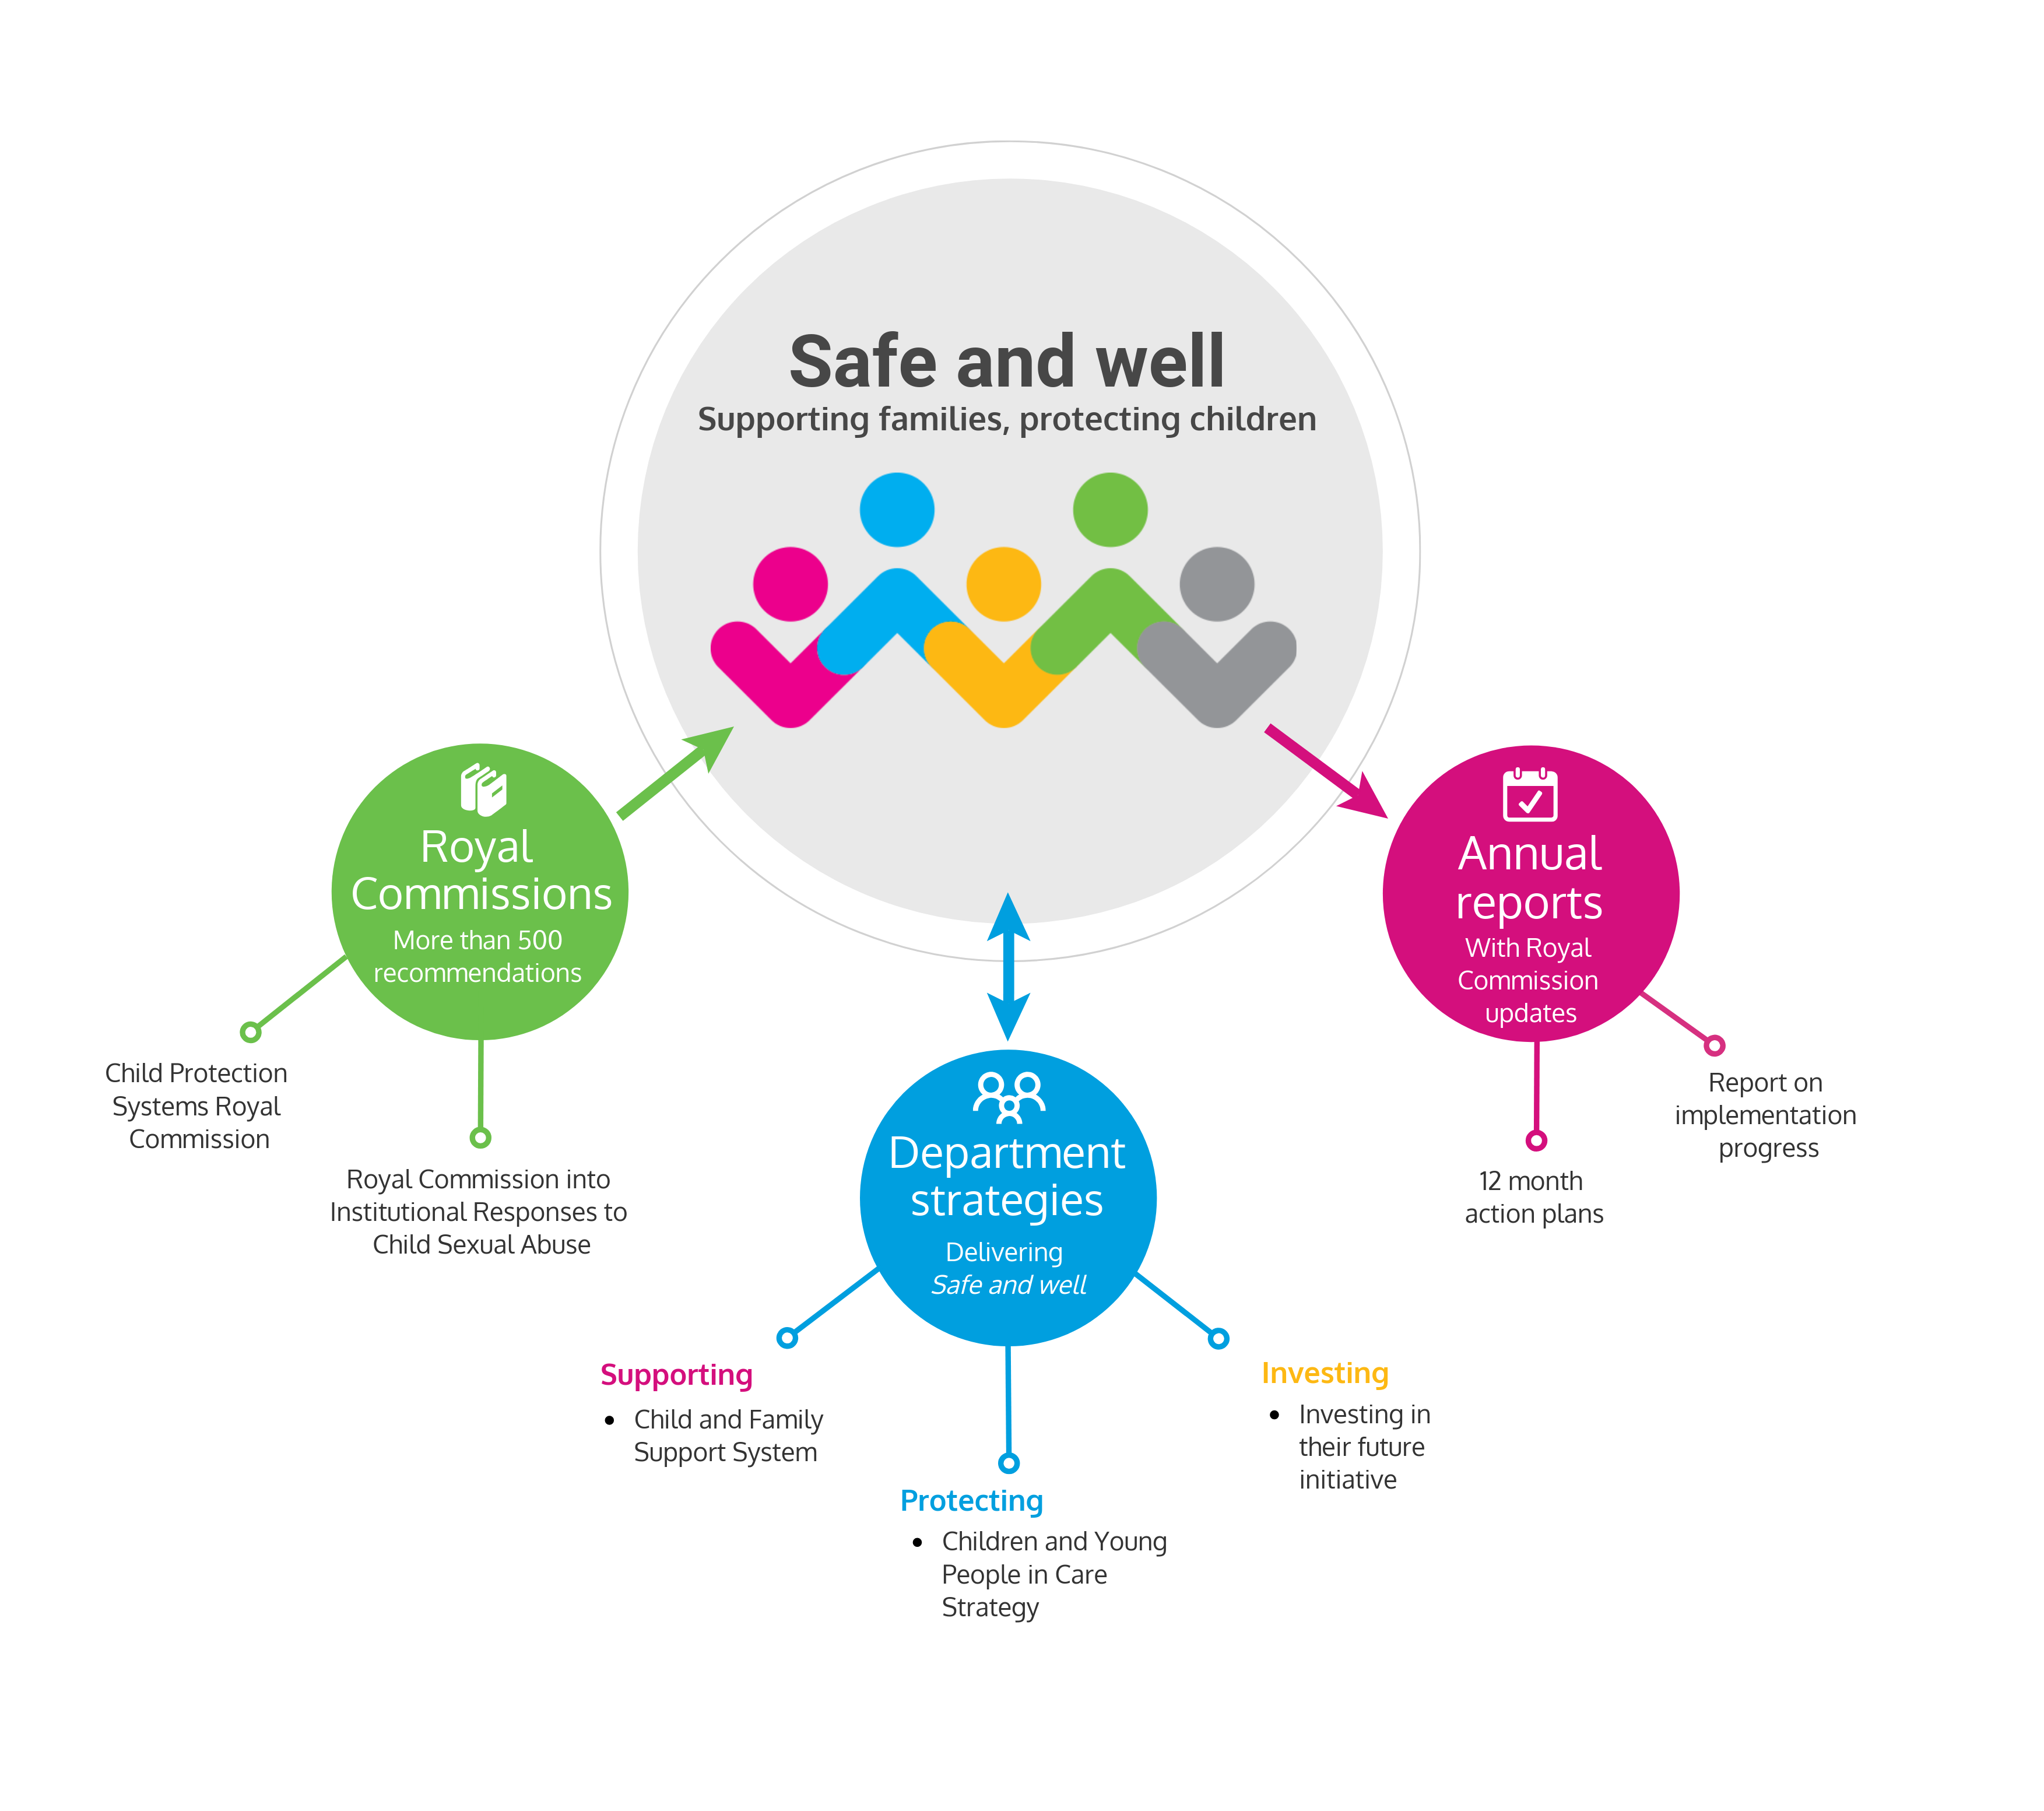 Diagram showing 'Safe and well' as the overarching framework that brings together more than 500 recommendations from the federal and state Royal Commissions with department strategies such the Children and Young People in Care Strategy, Investing in their future initiative and the Child and Family Support System. Coming out of 'Safe and well' are annual reports with Royal Commission updates, 12 month action plans and reporting on implementation progress